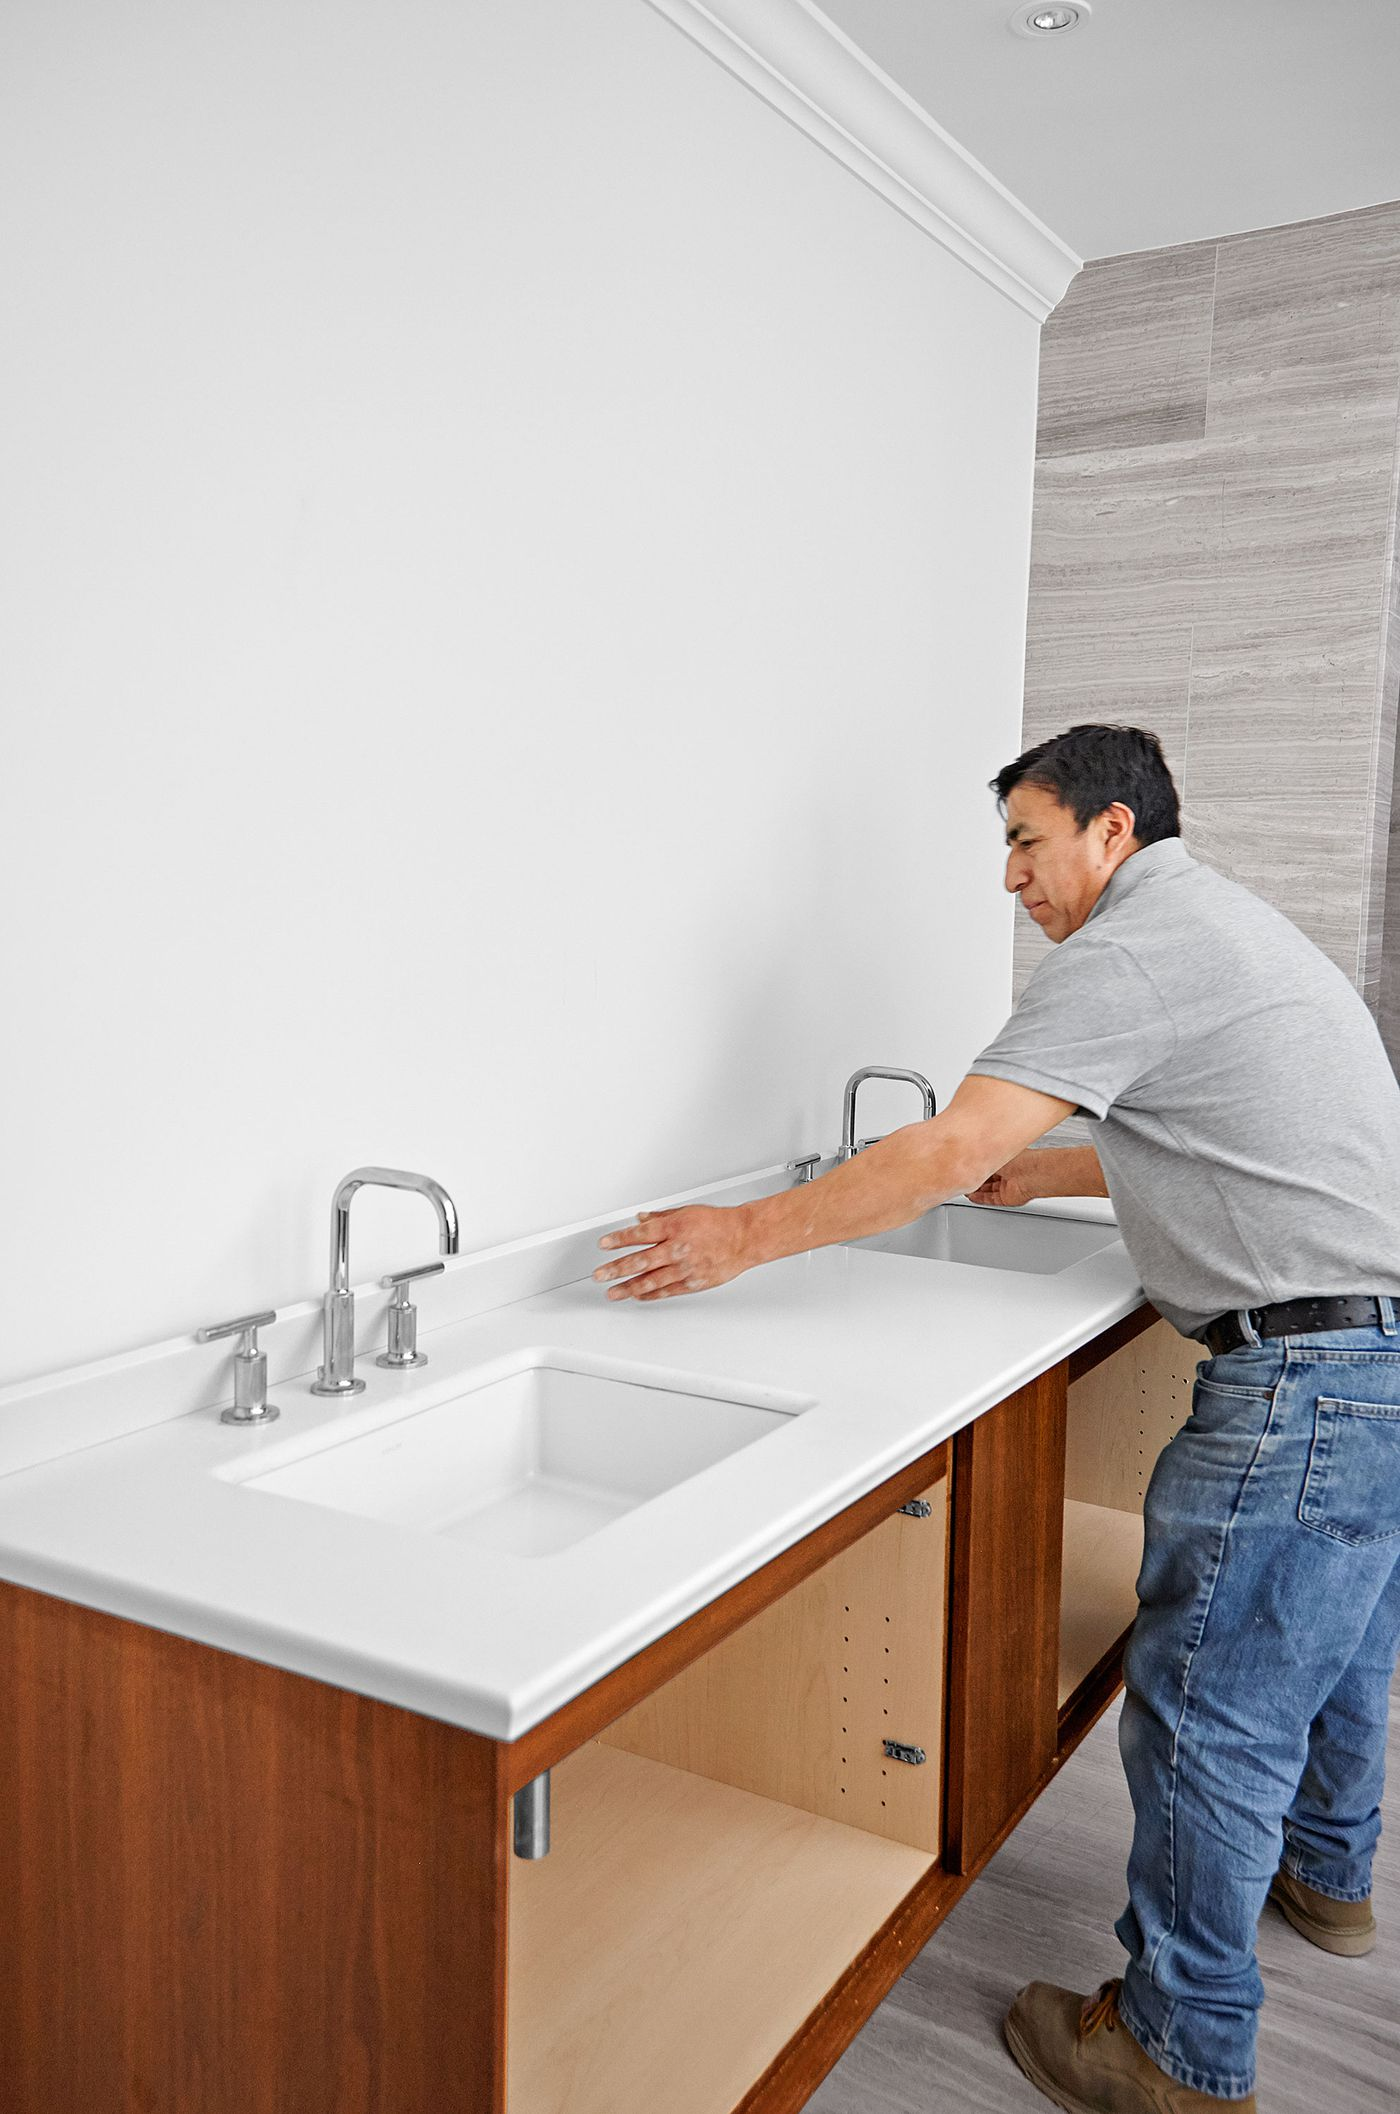 How To Install A Wall Mount Vanity And Sinks This Old House